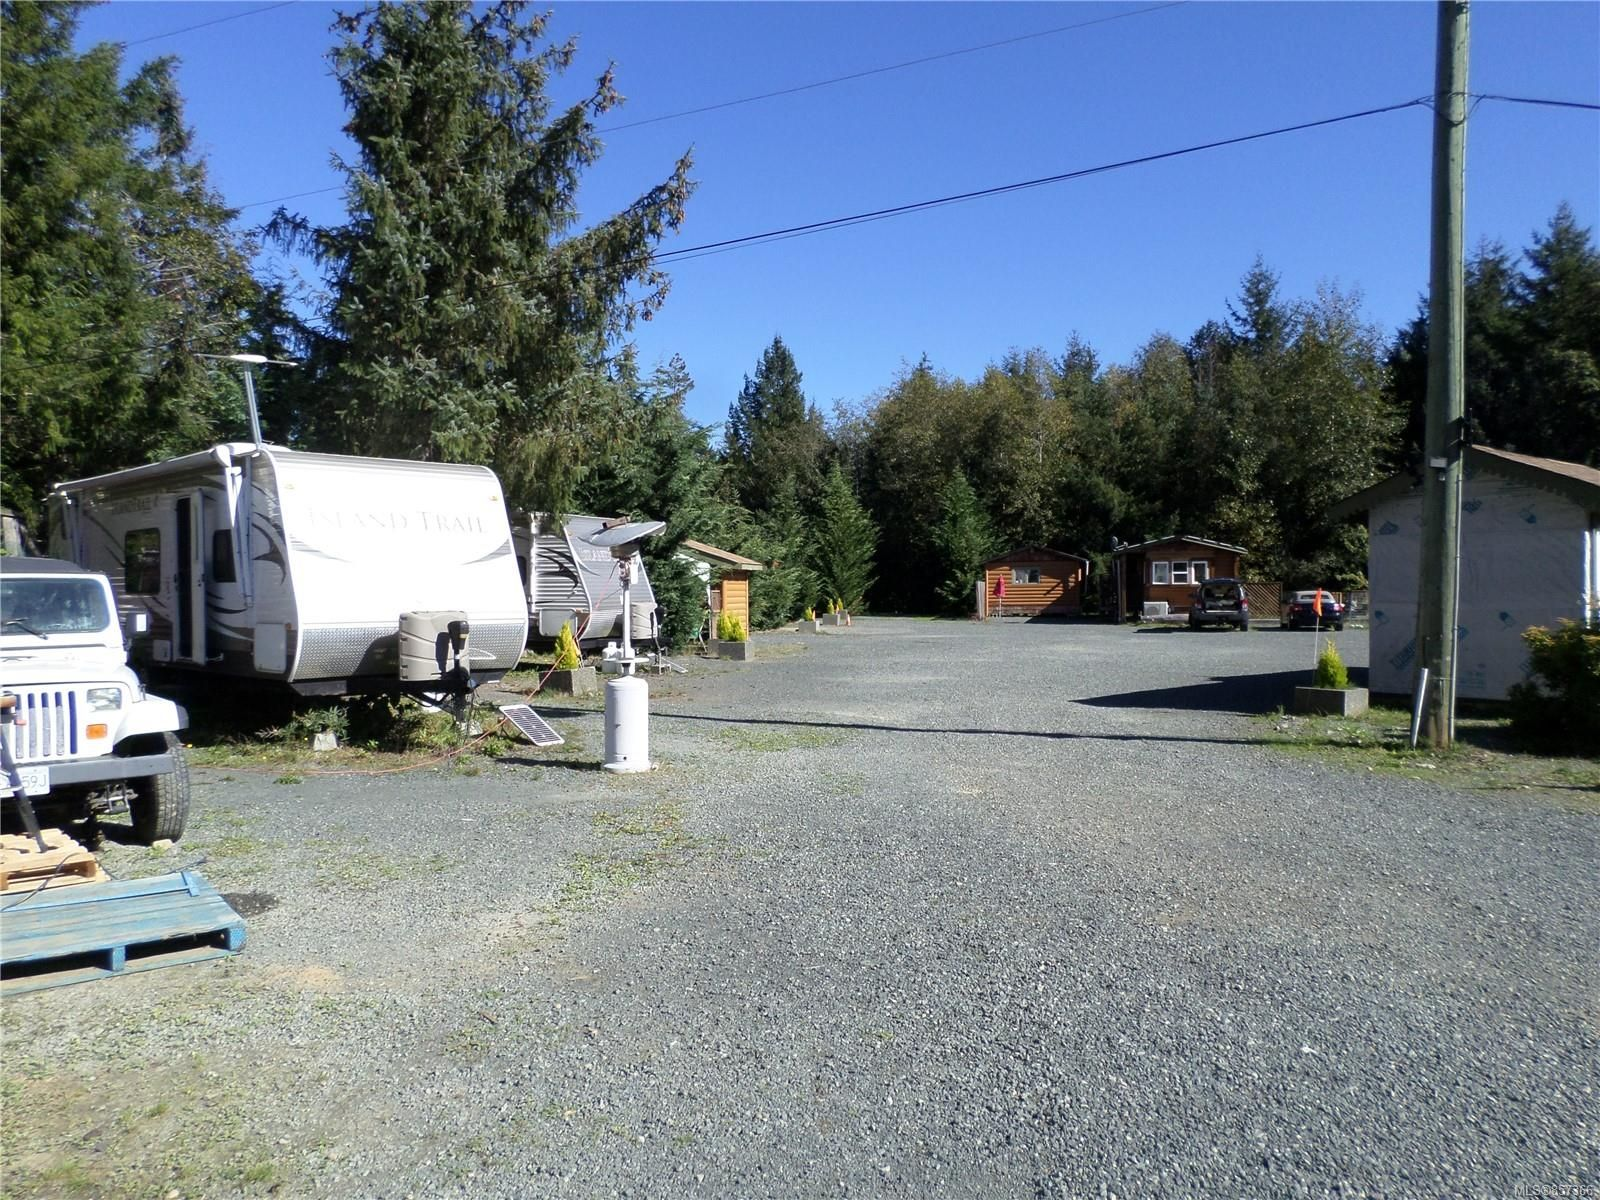 Photo 25: Photos: 1747 Nahmint Rd in : PQ Qualicum North Mixed Use for sale (Parksville/Qualicum)  : MLS®# 857366